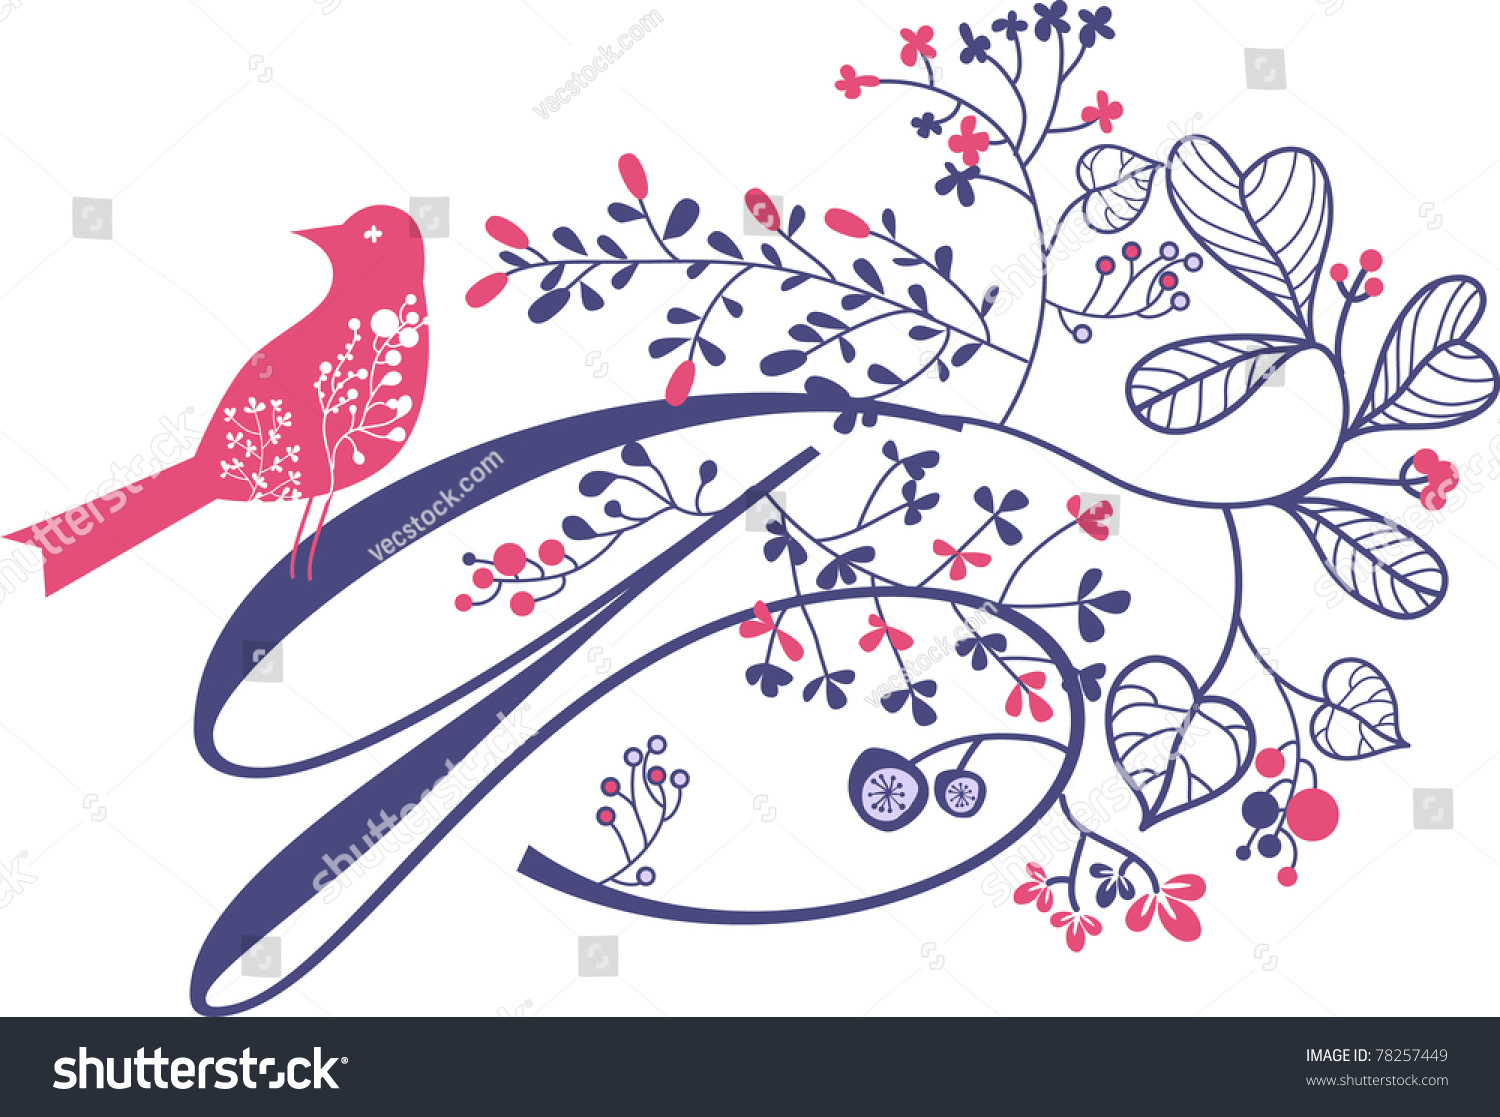 cool letter Q with bird and flowers - cool decor art- card and invitation